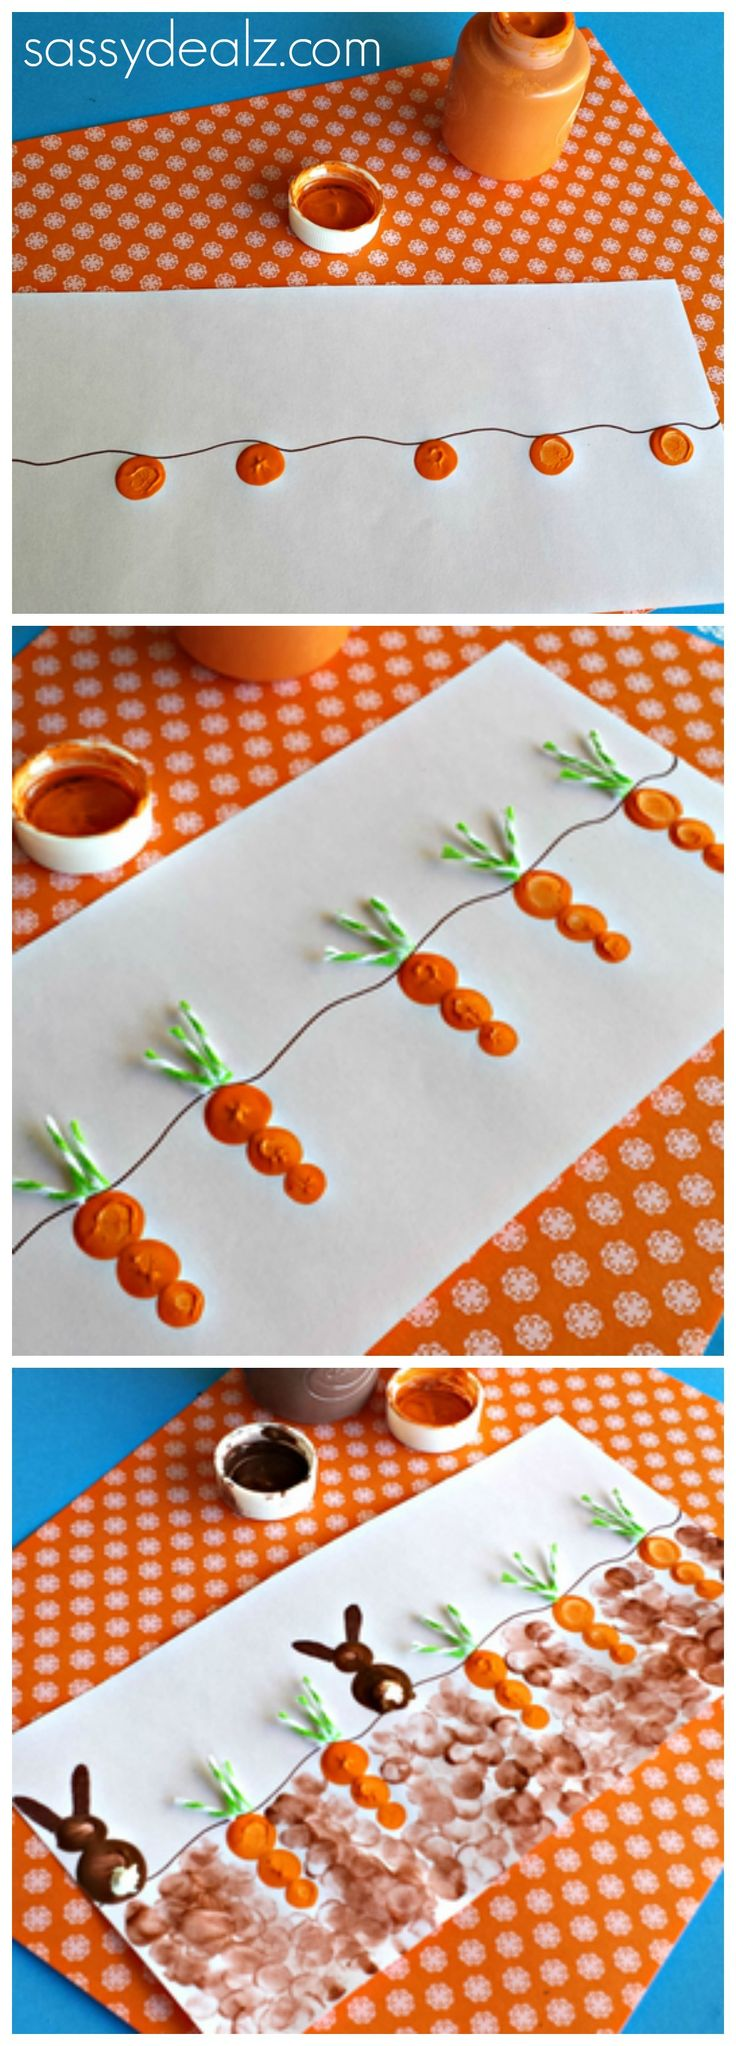 Fingerprint Carrot and Bunny Craft for Kids at Easter time! So cute! Love this!